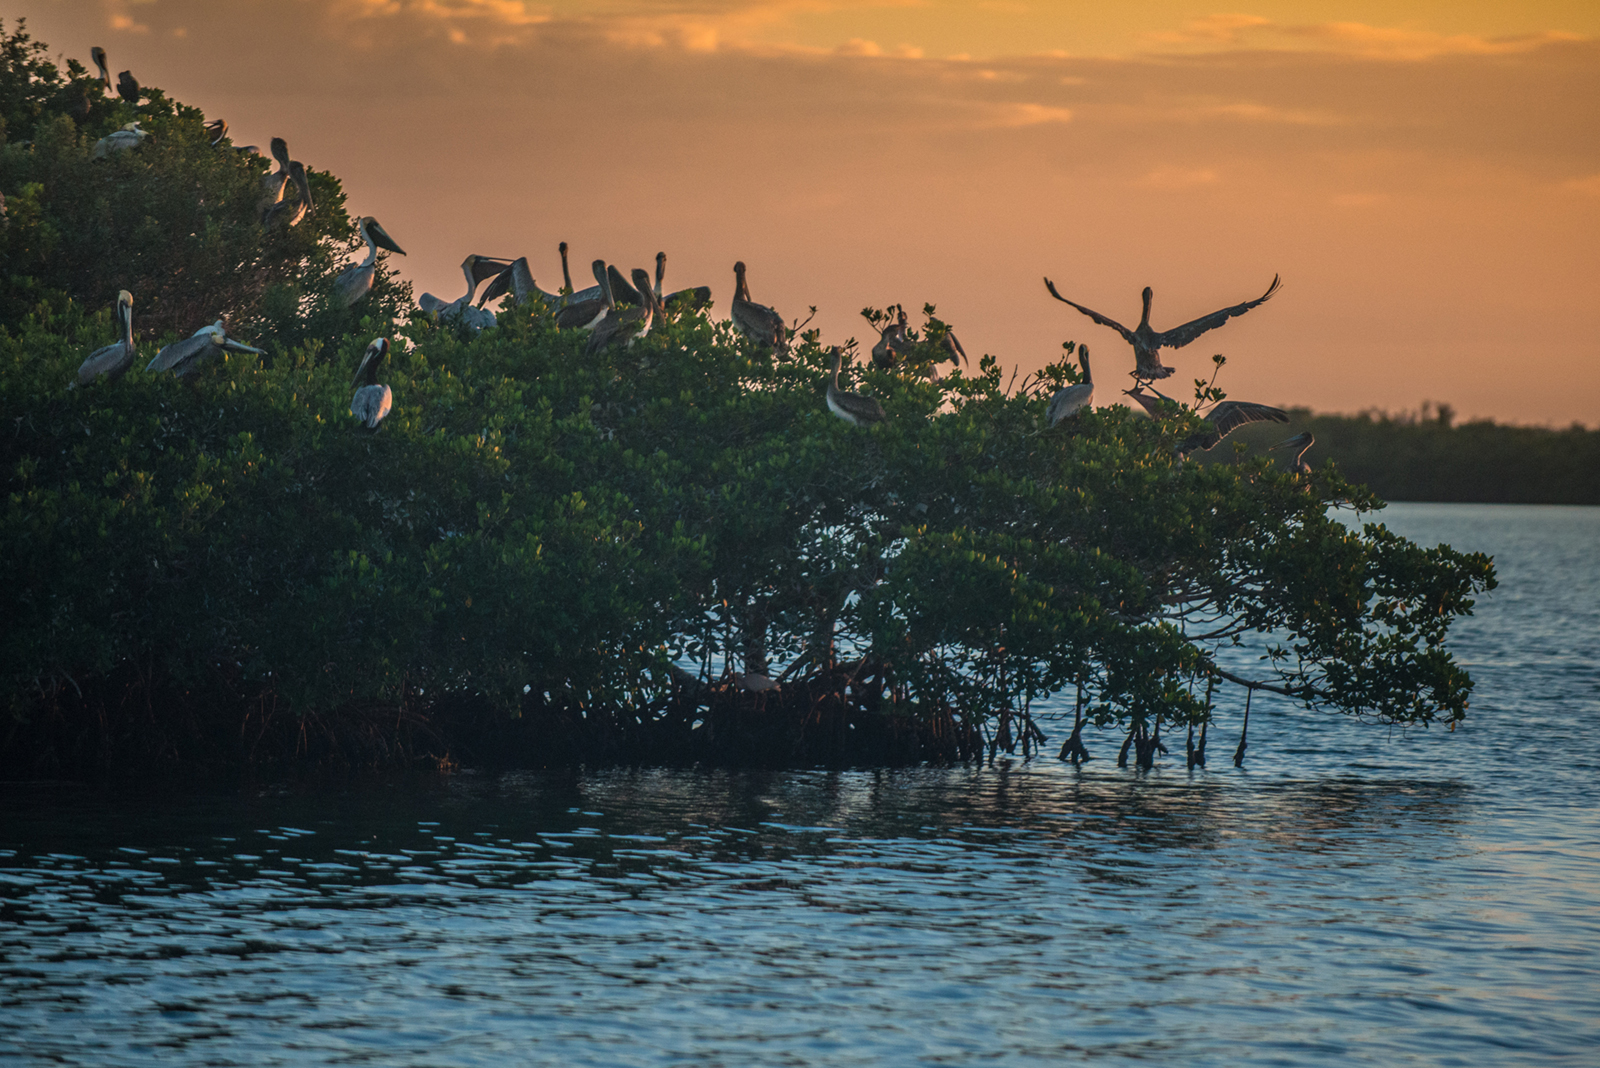 #sunset, #pelican, #orangeandblue, #rookerybay, #rookeryisland, #mangrove, #goodnight